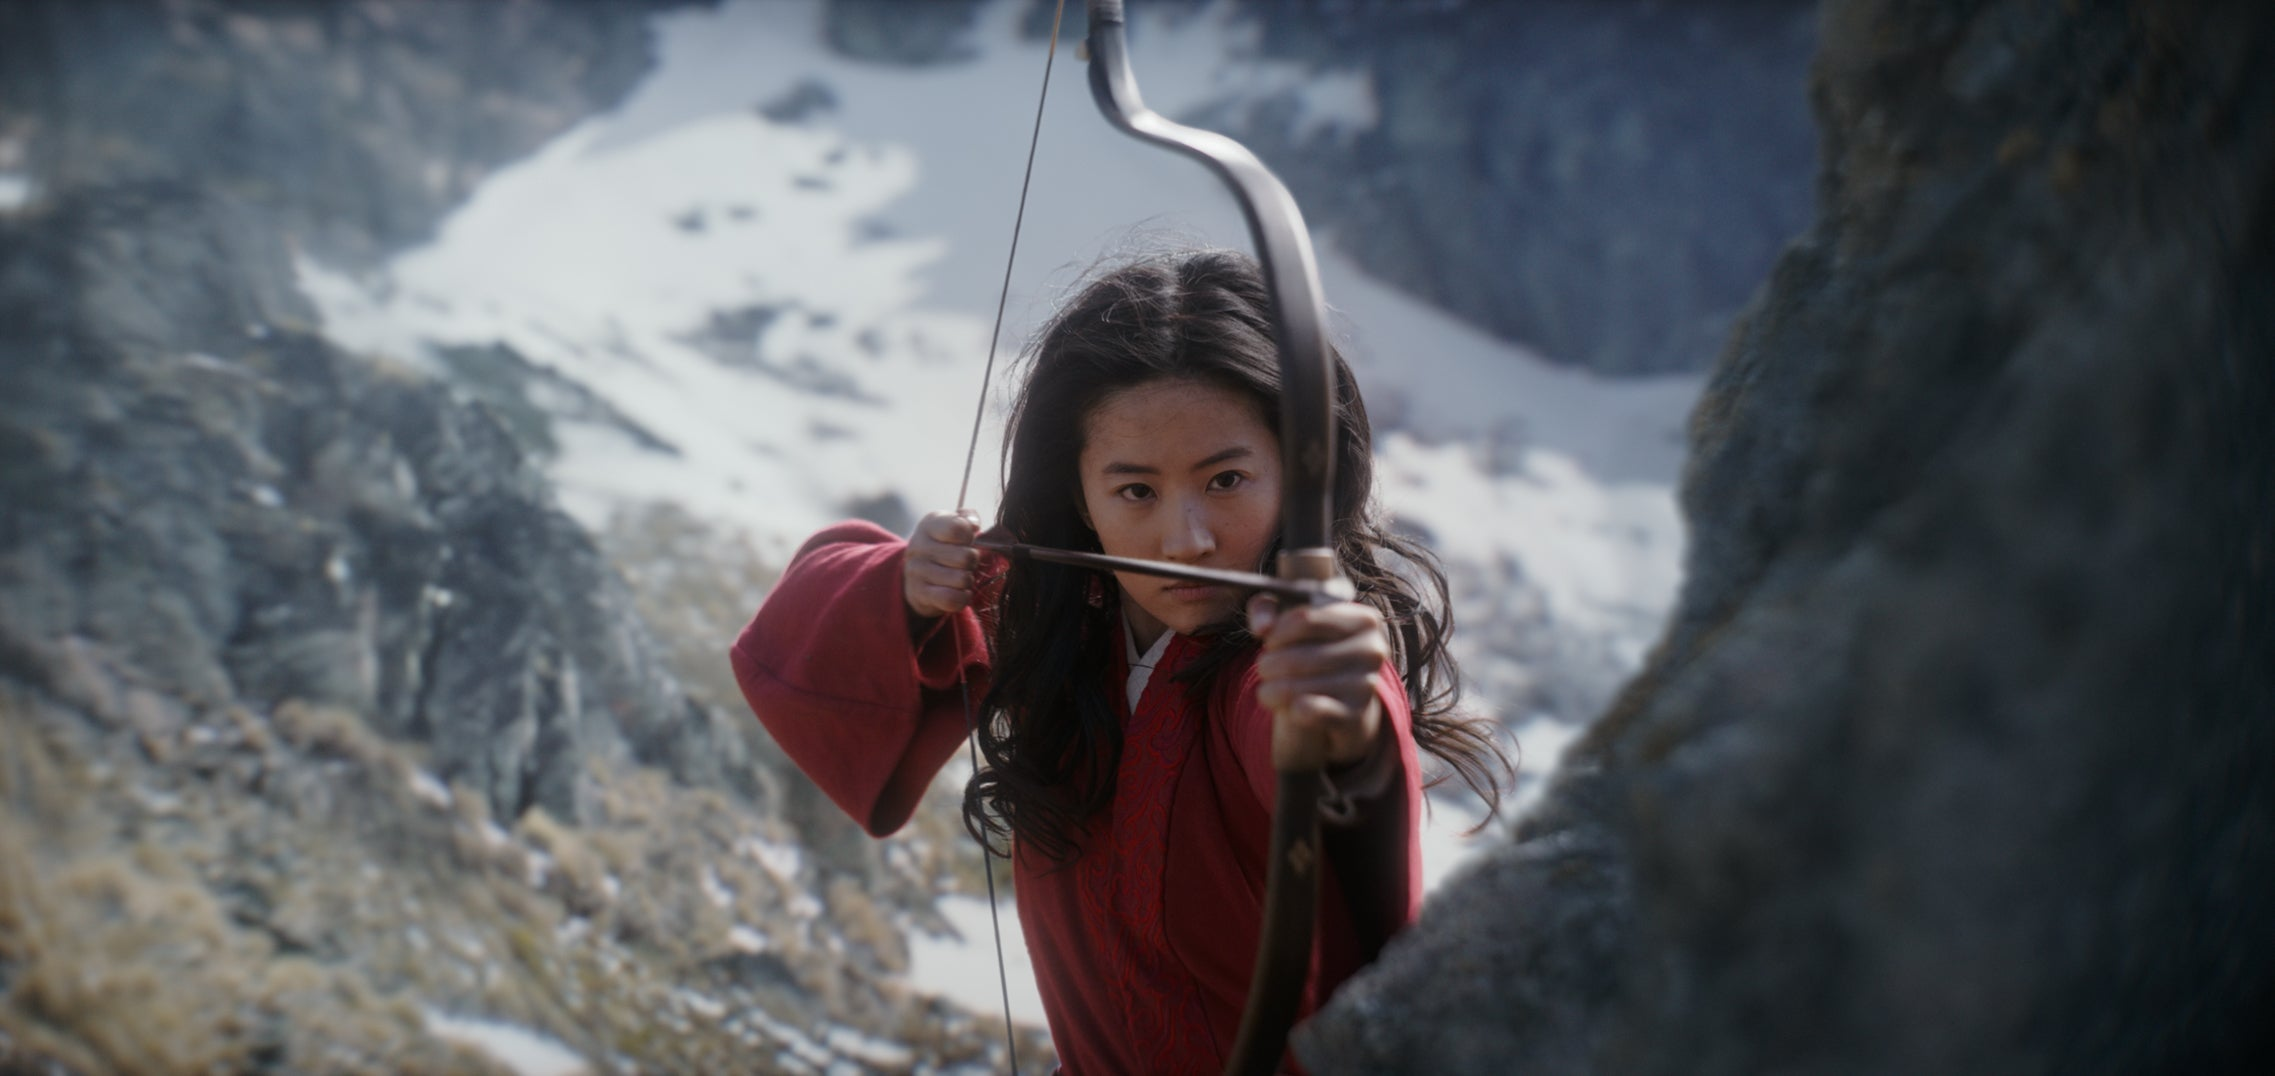 The Dow rises 200 points as Disney's 'Mulan' gets into trouble, and the Boeing 787 finds another flaw in the Dreamliner